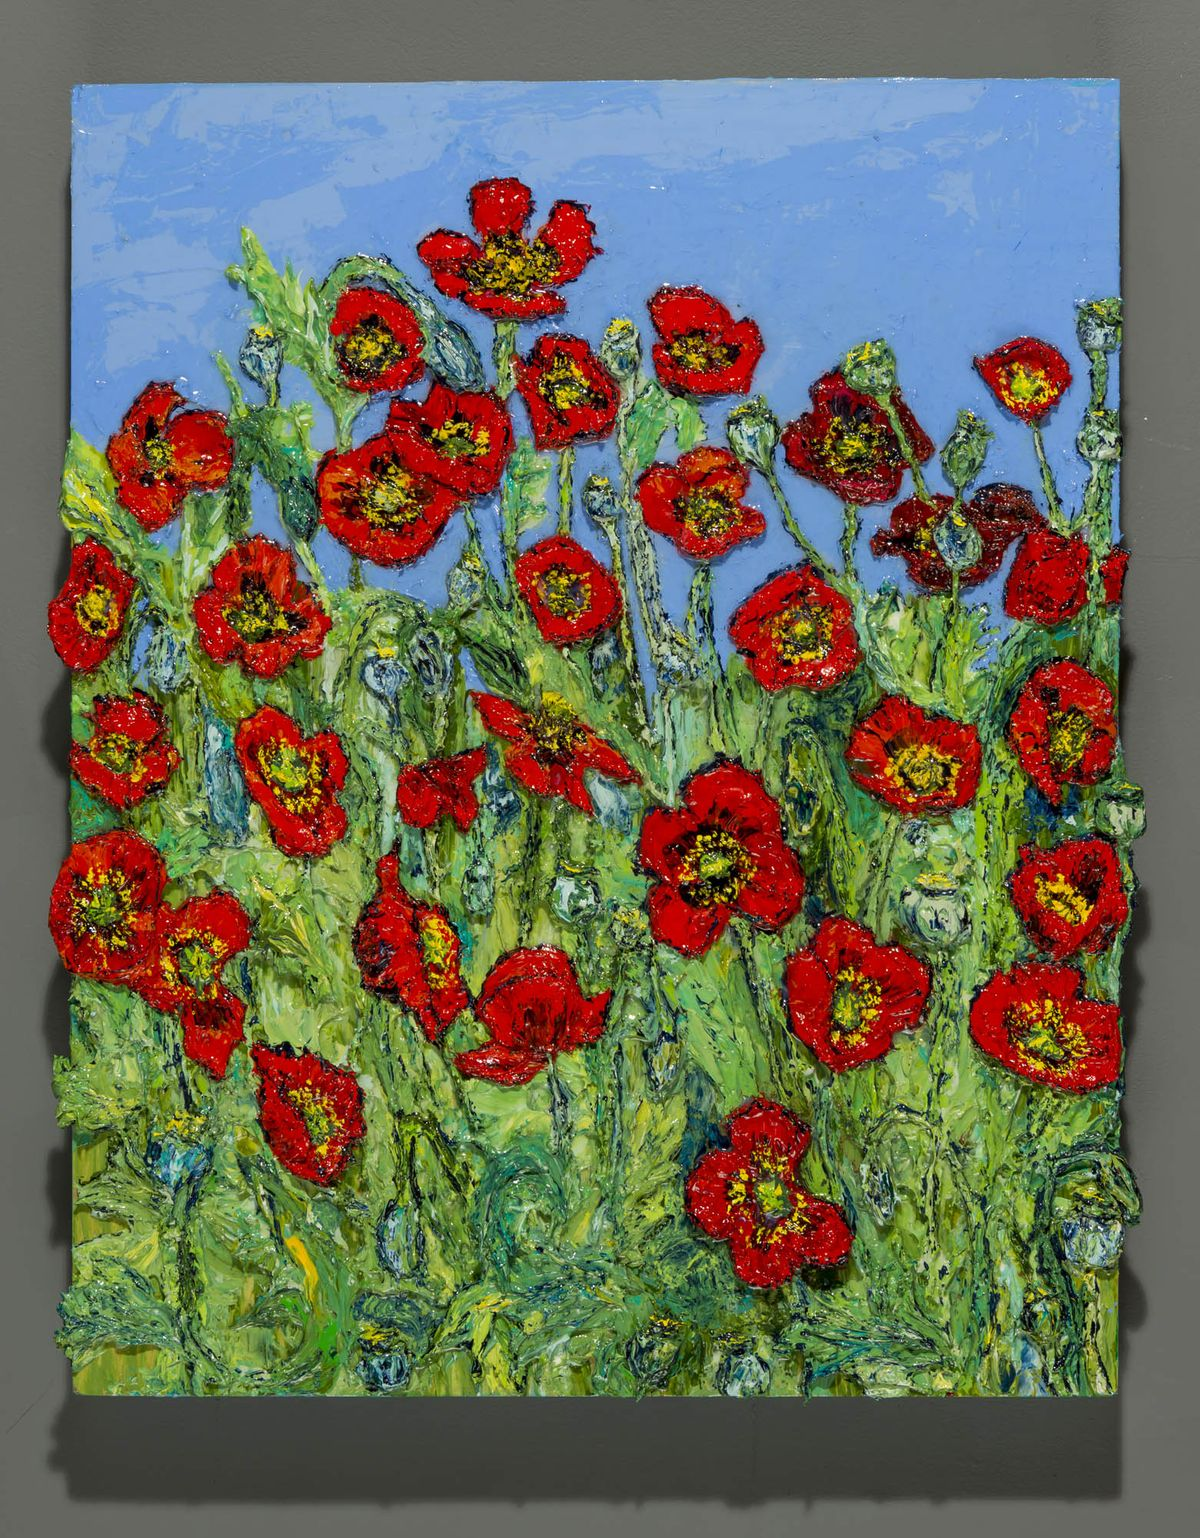 Julene_Franki_poppies_poppies_poppies_Austin_Art_Local_Art.jpeg